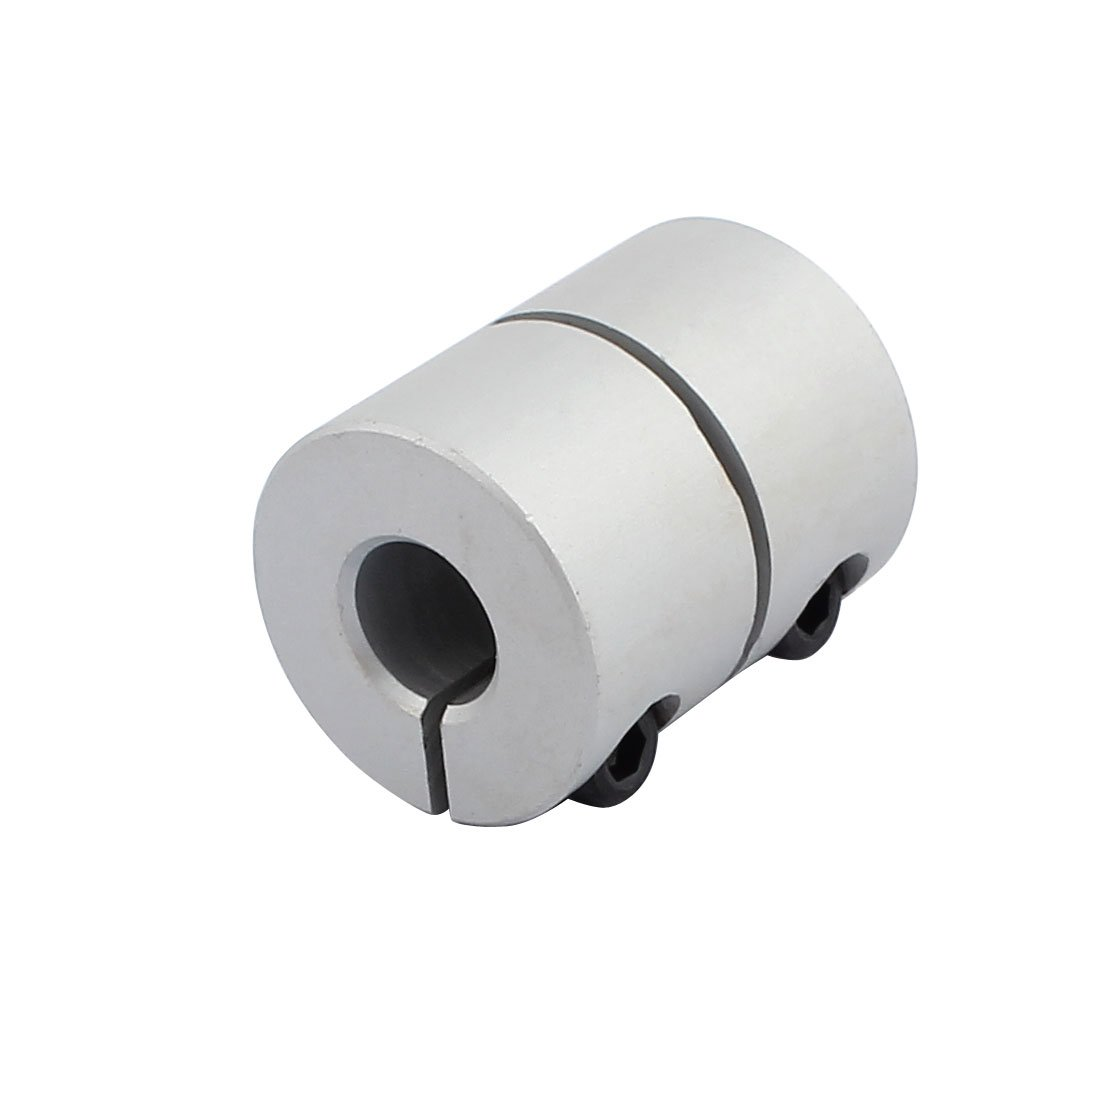 uxcell 8mm to 8mm Shaft Coupling 40mm Length 25mm Diameter Coupler Aluminum Alloy Joint Motor for 3D Printer CNC Machine DIY Encoder